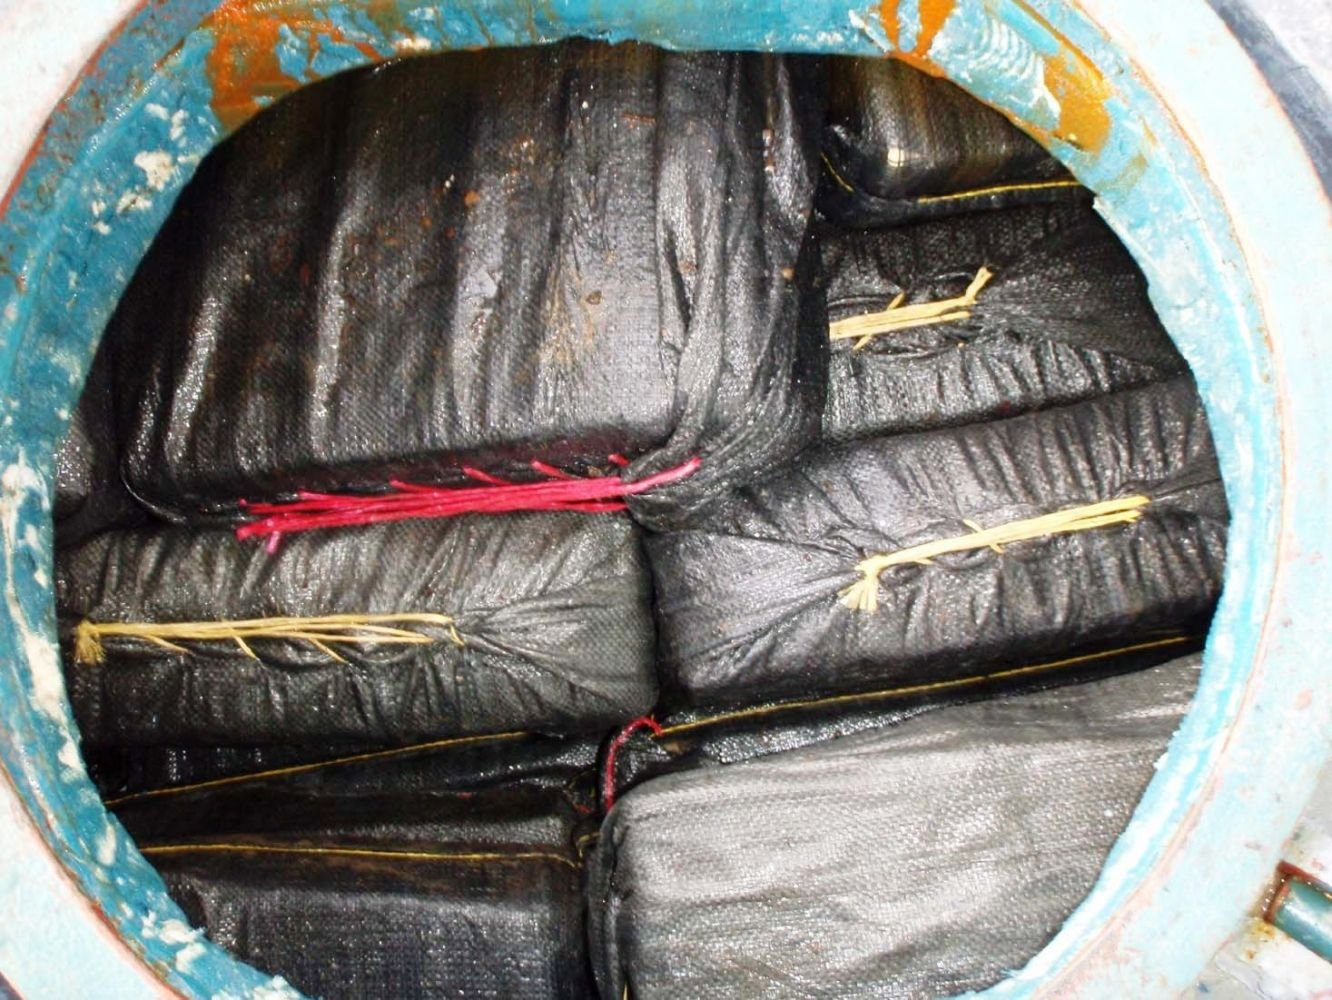 Drug Traffickers Utilize GPS Enabled Satellite Buoys to Locate Cocaine Shipments